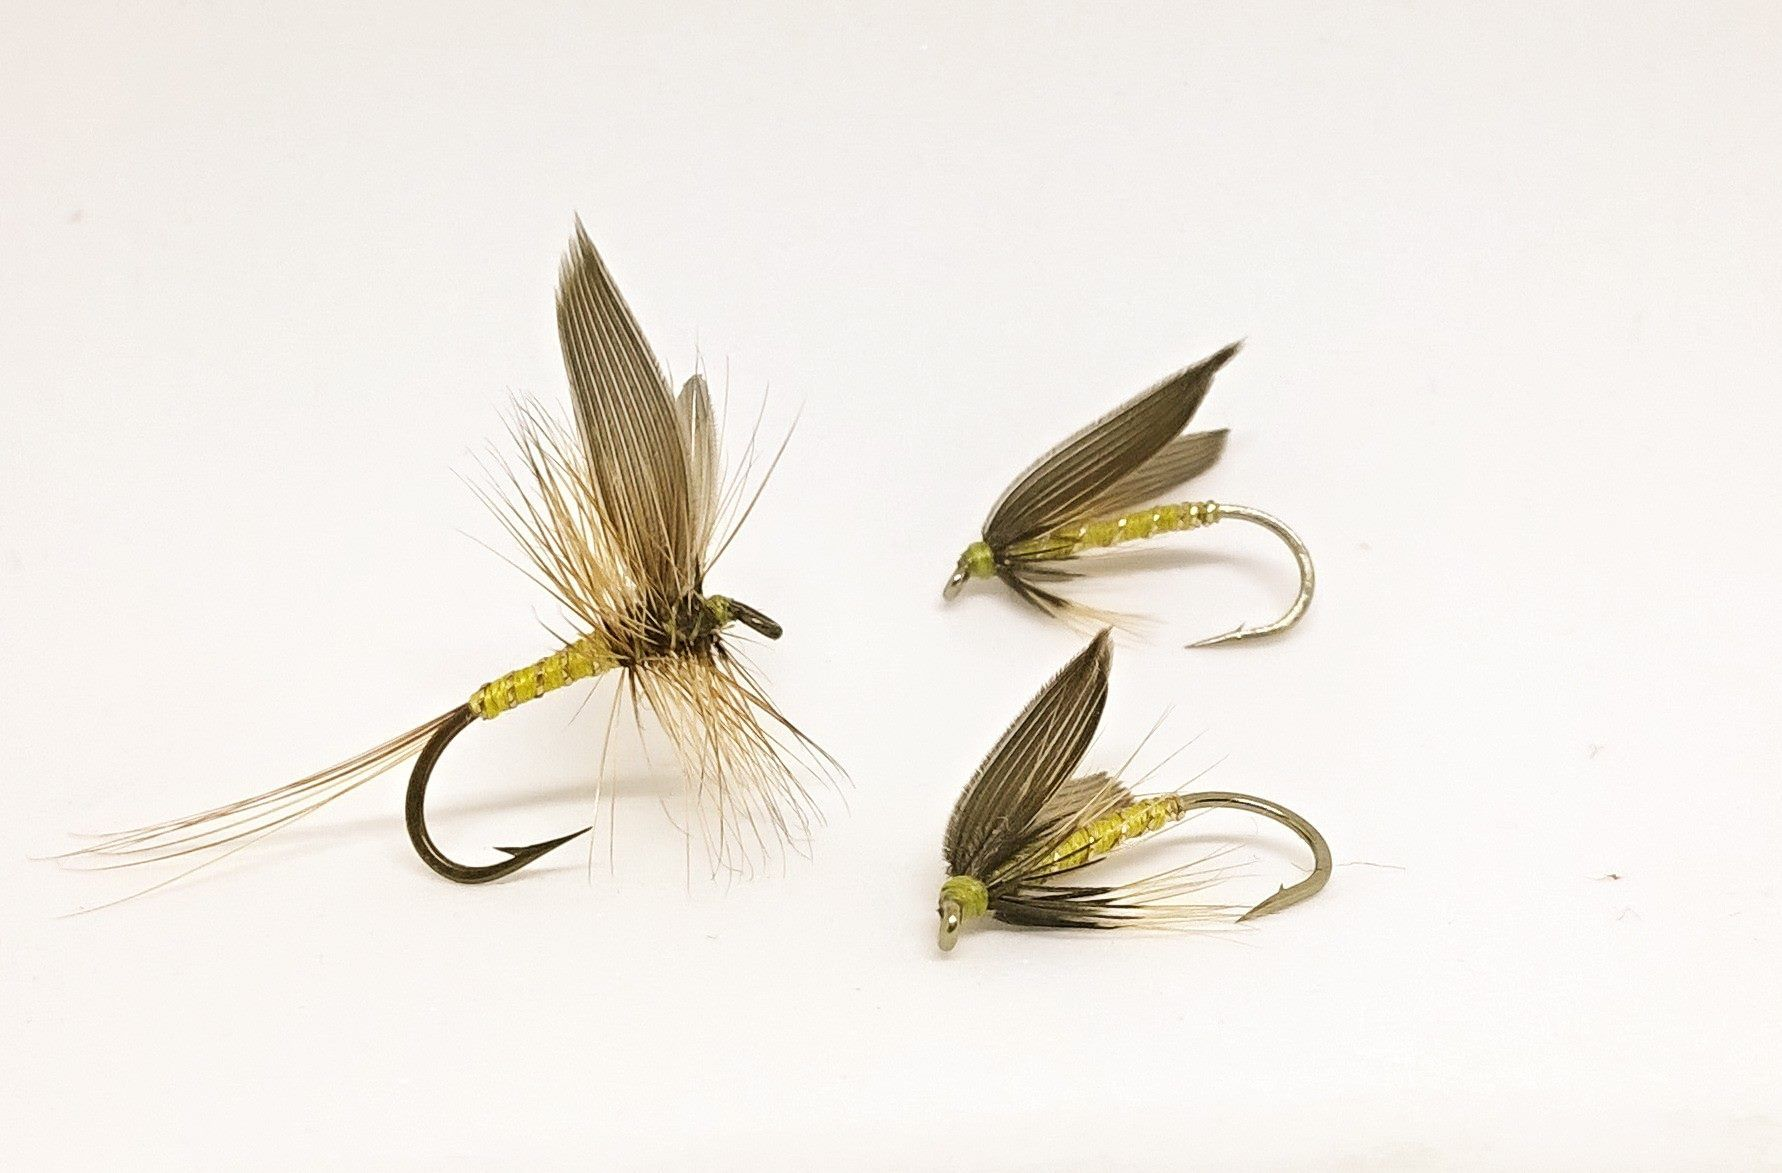 GREENWELL/'S GLORY 12 x #12 DRY FLY FISHING FLIES